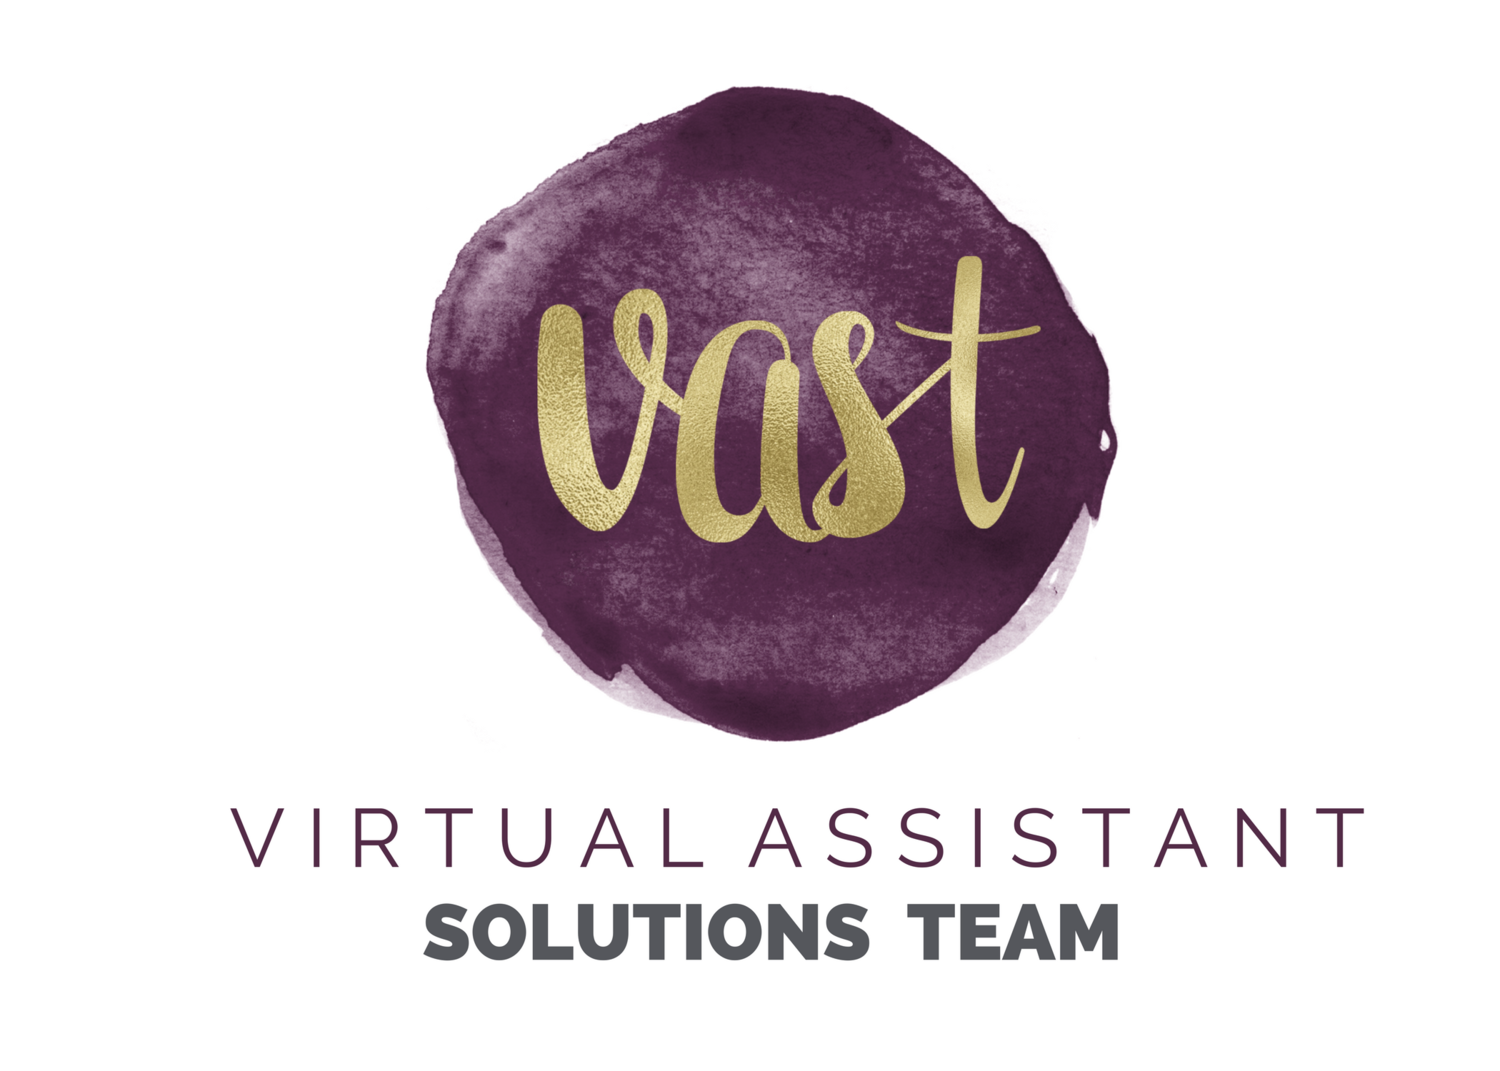 Virtual Assistant Solutions Team